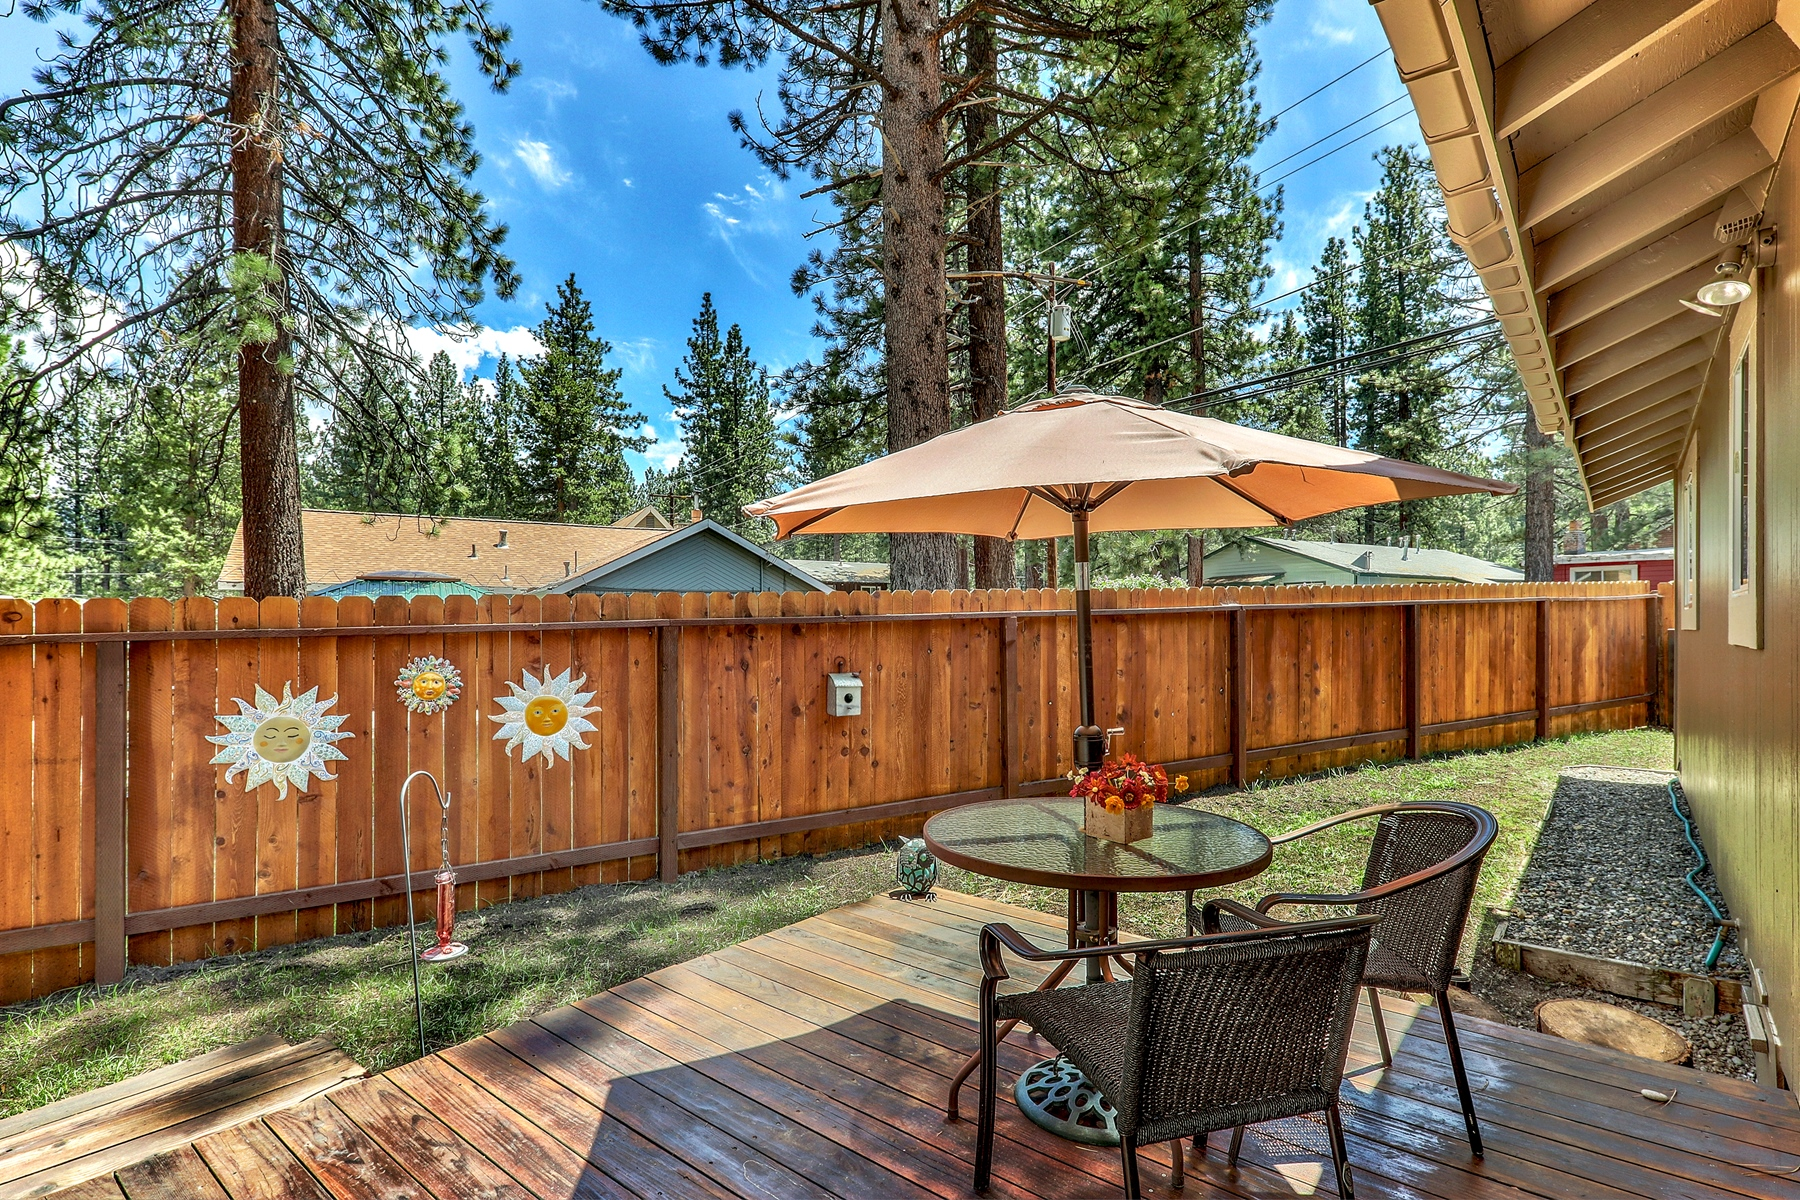 Additional photo for property listing at 2674 Rose Ave, South Lake Tahoe, CA 96150 2674 Rose Avenue South Lake Tahoe, California 96150 United States